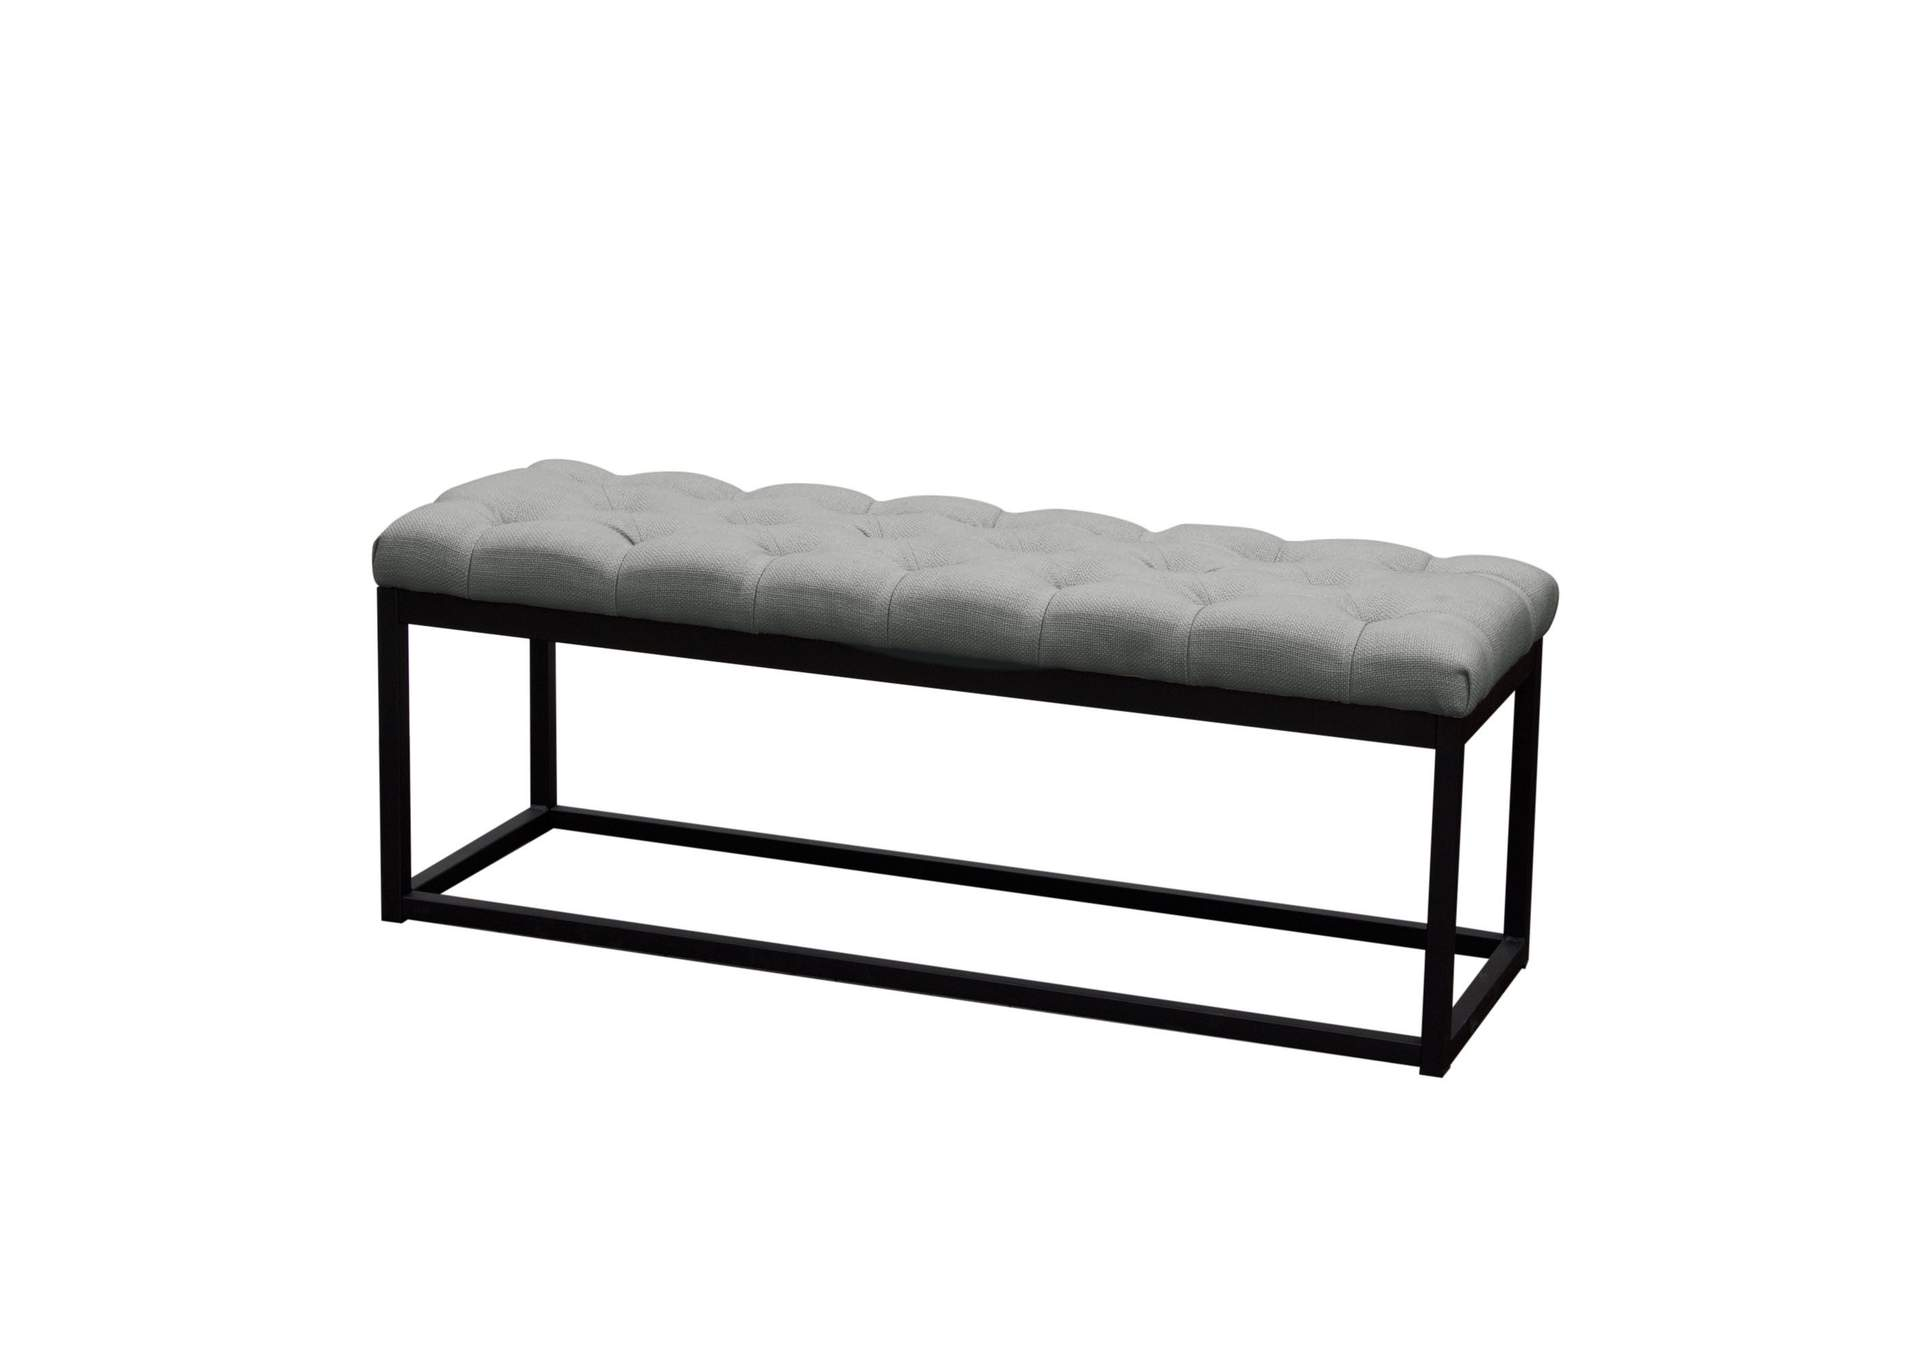 Mateo Gray/Black Powder Coat Metal Small Linen Tufted Bench,Diamond Sofa